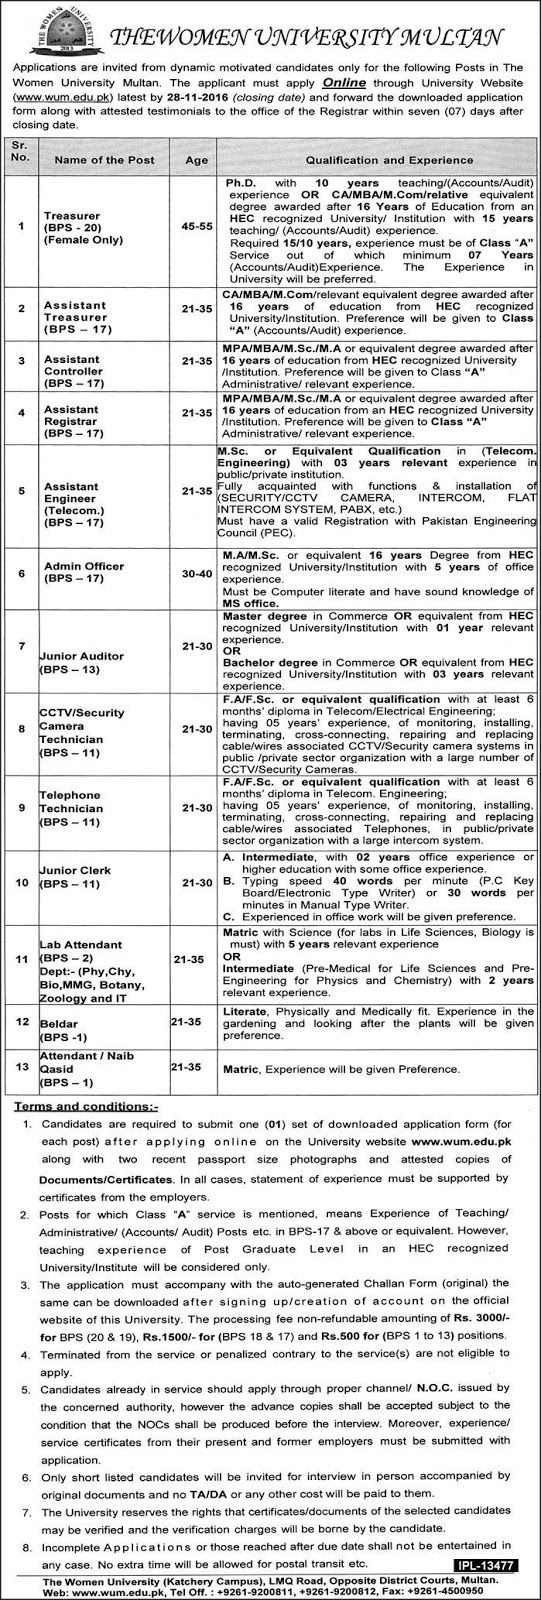 Latest Government Jobs in Women University Multan